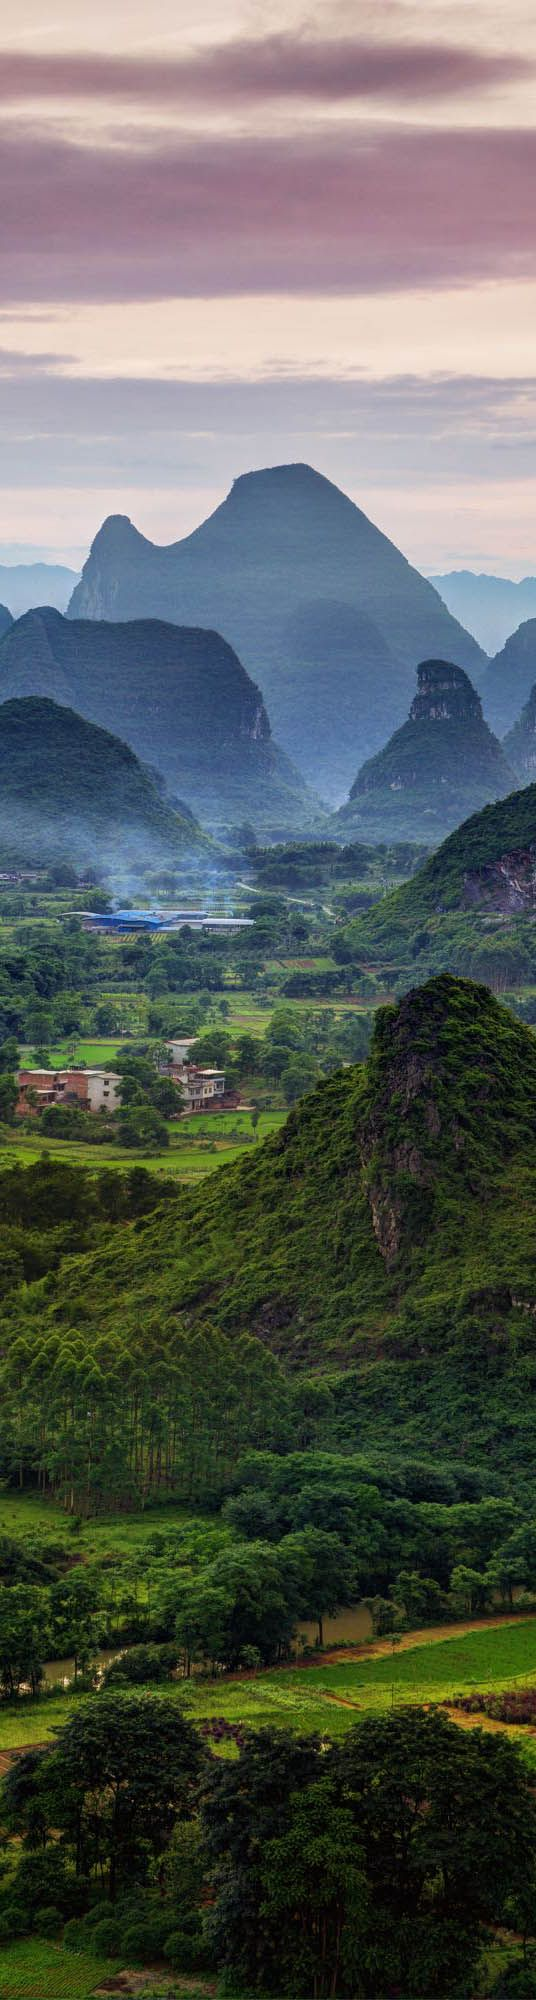 Late afternoon in the Karst of Guangxi, China - photo from #treyratcliff Trey Ratcliff at http://www.StuckInCustoms.com